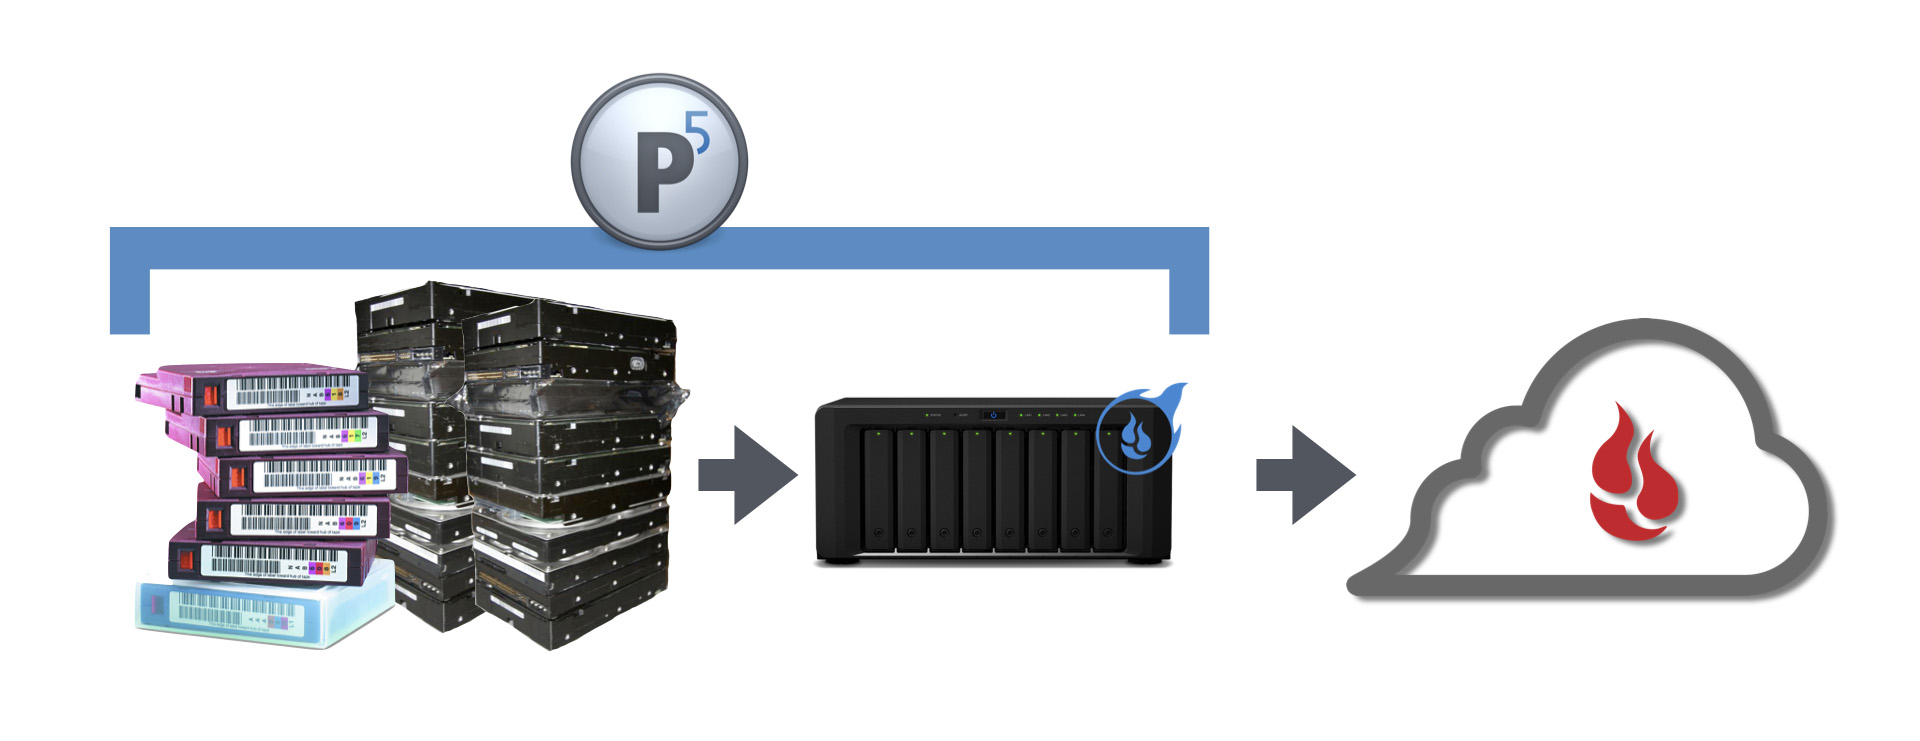 Archiware P5 to B2 workflow